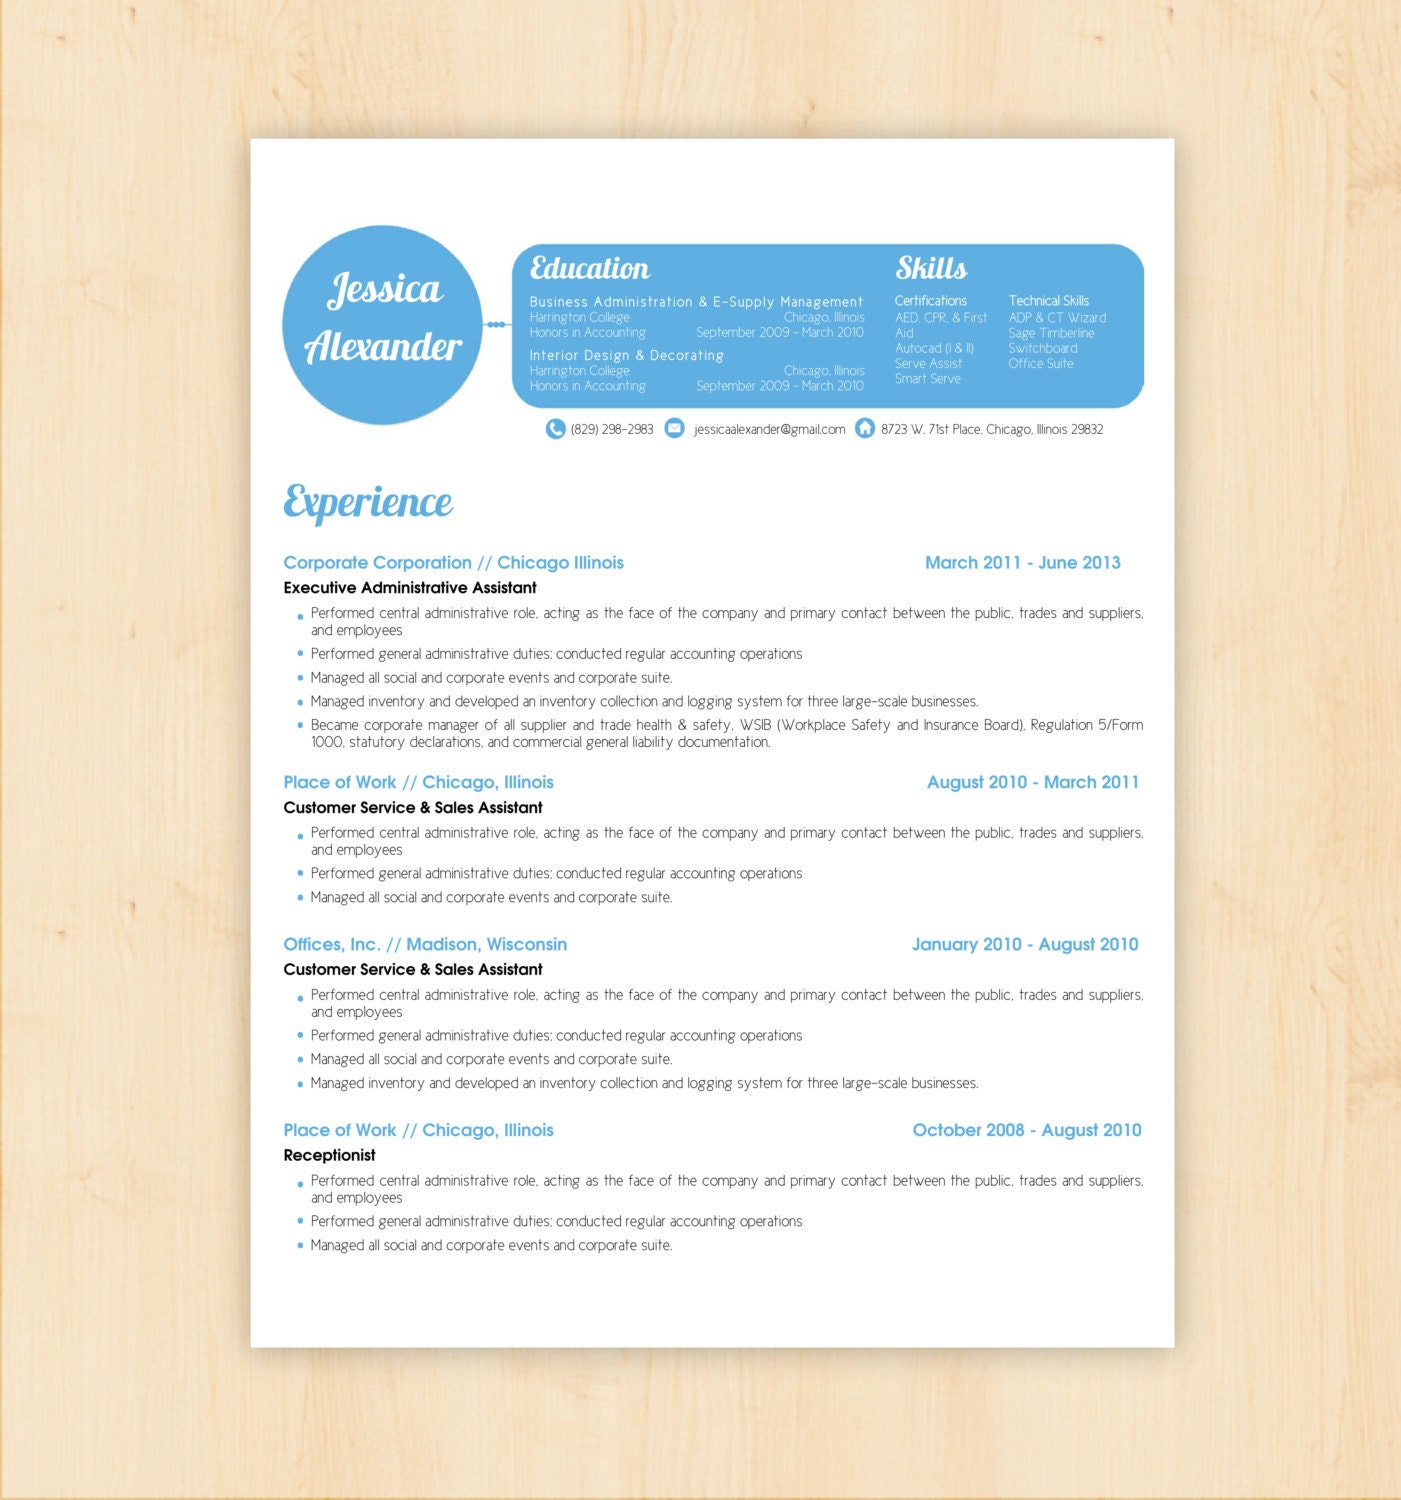 Resume Template Cover Letter Template The Sara By Phdpress: Resume Template / CV Template The Jessica Alexander By